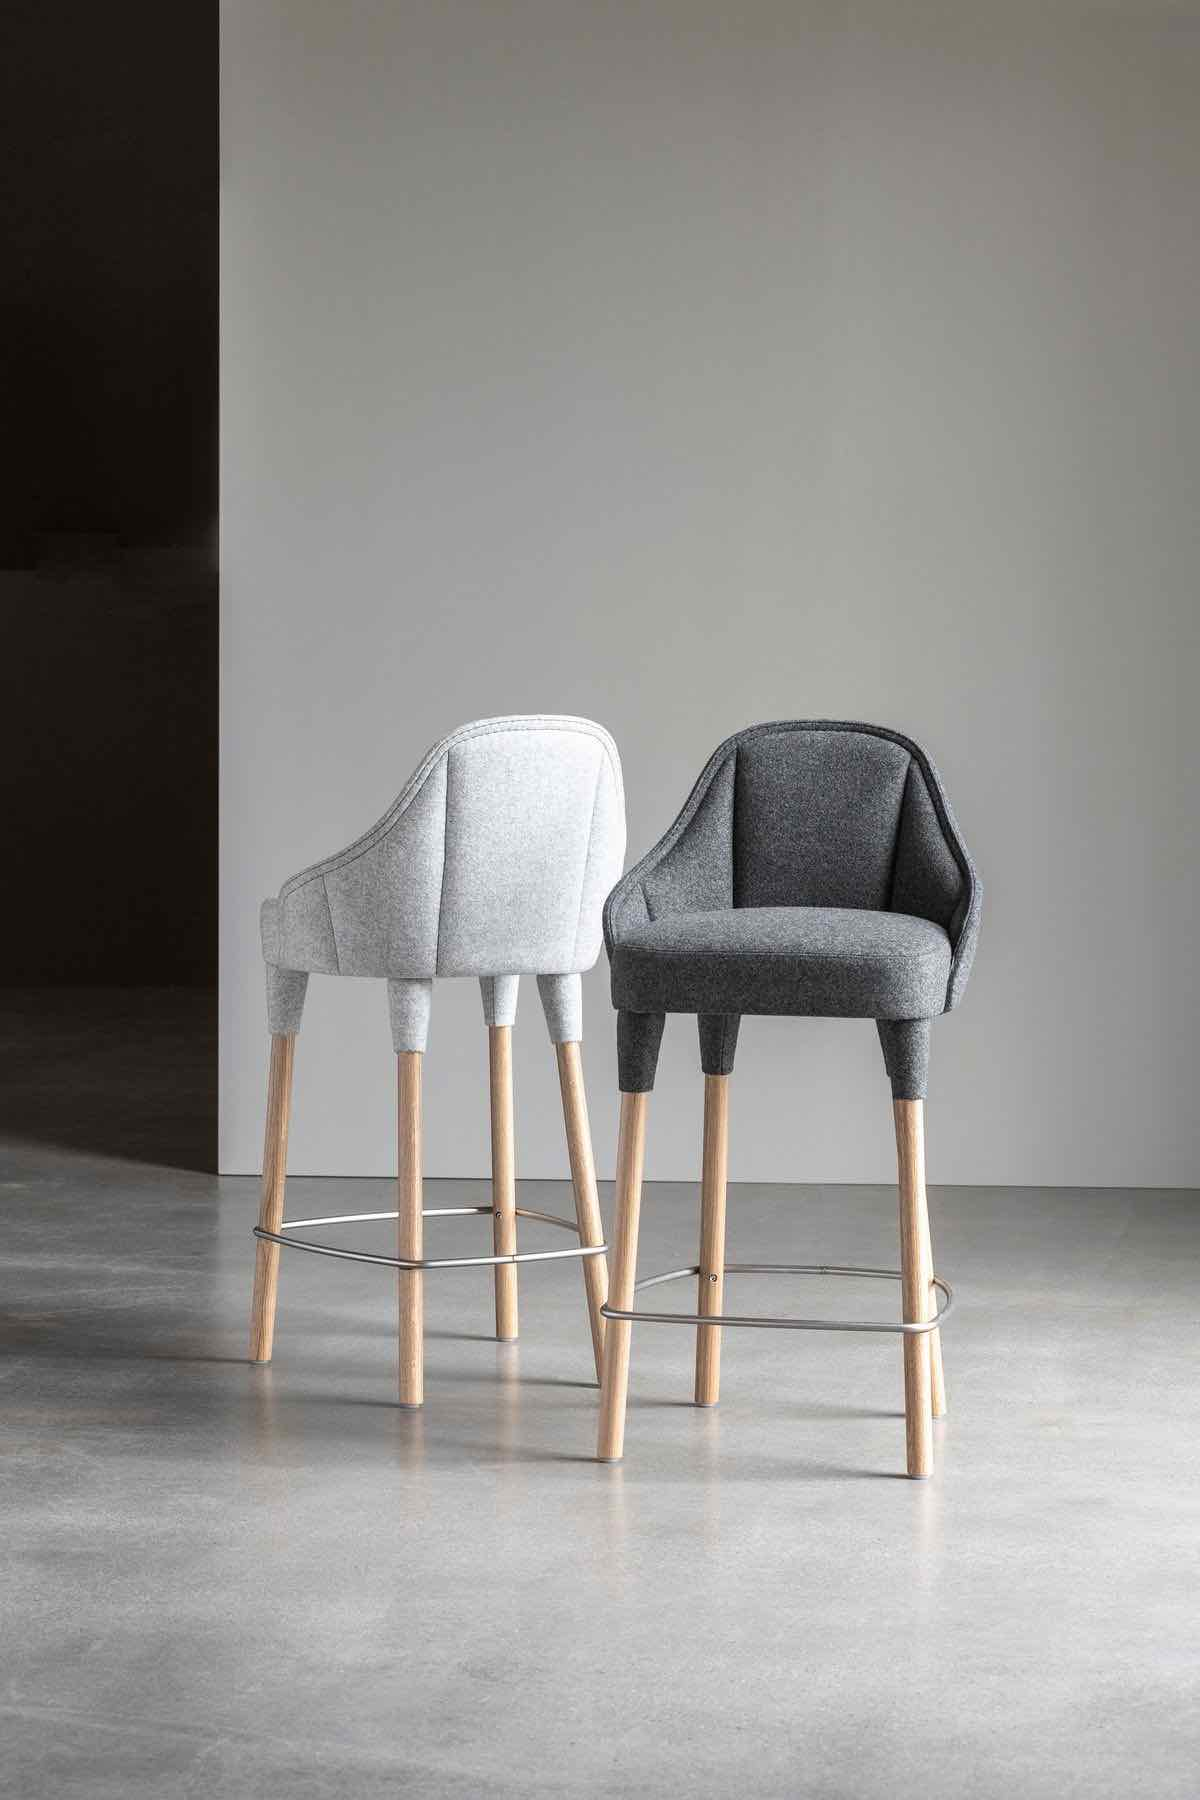 EMILY stool bar by Farg & Blanche for GÄRSNÄS - Photo by GÄRSNÄS.